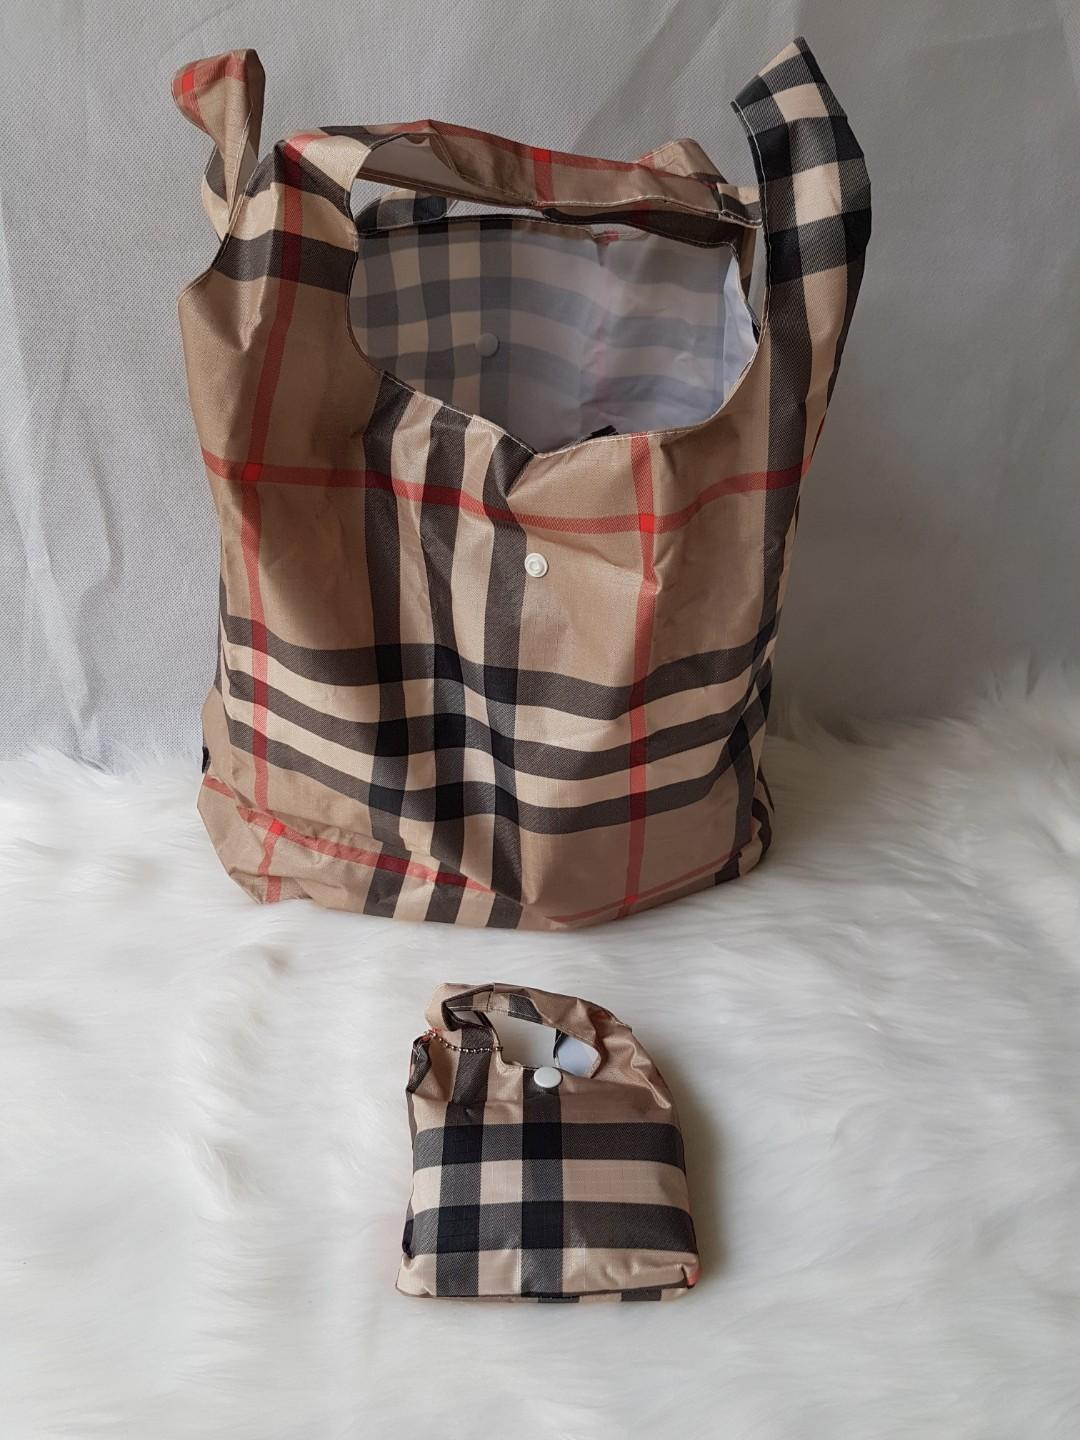 Burberry Reusable Waterproof stylish grocery shopping bag